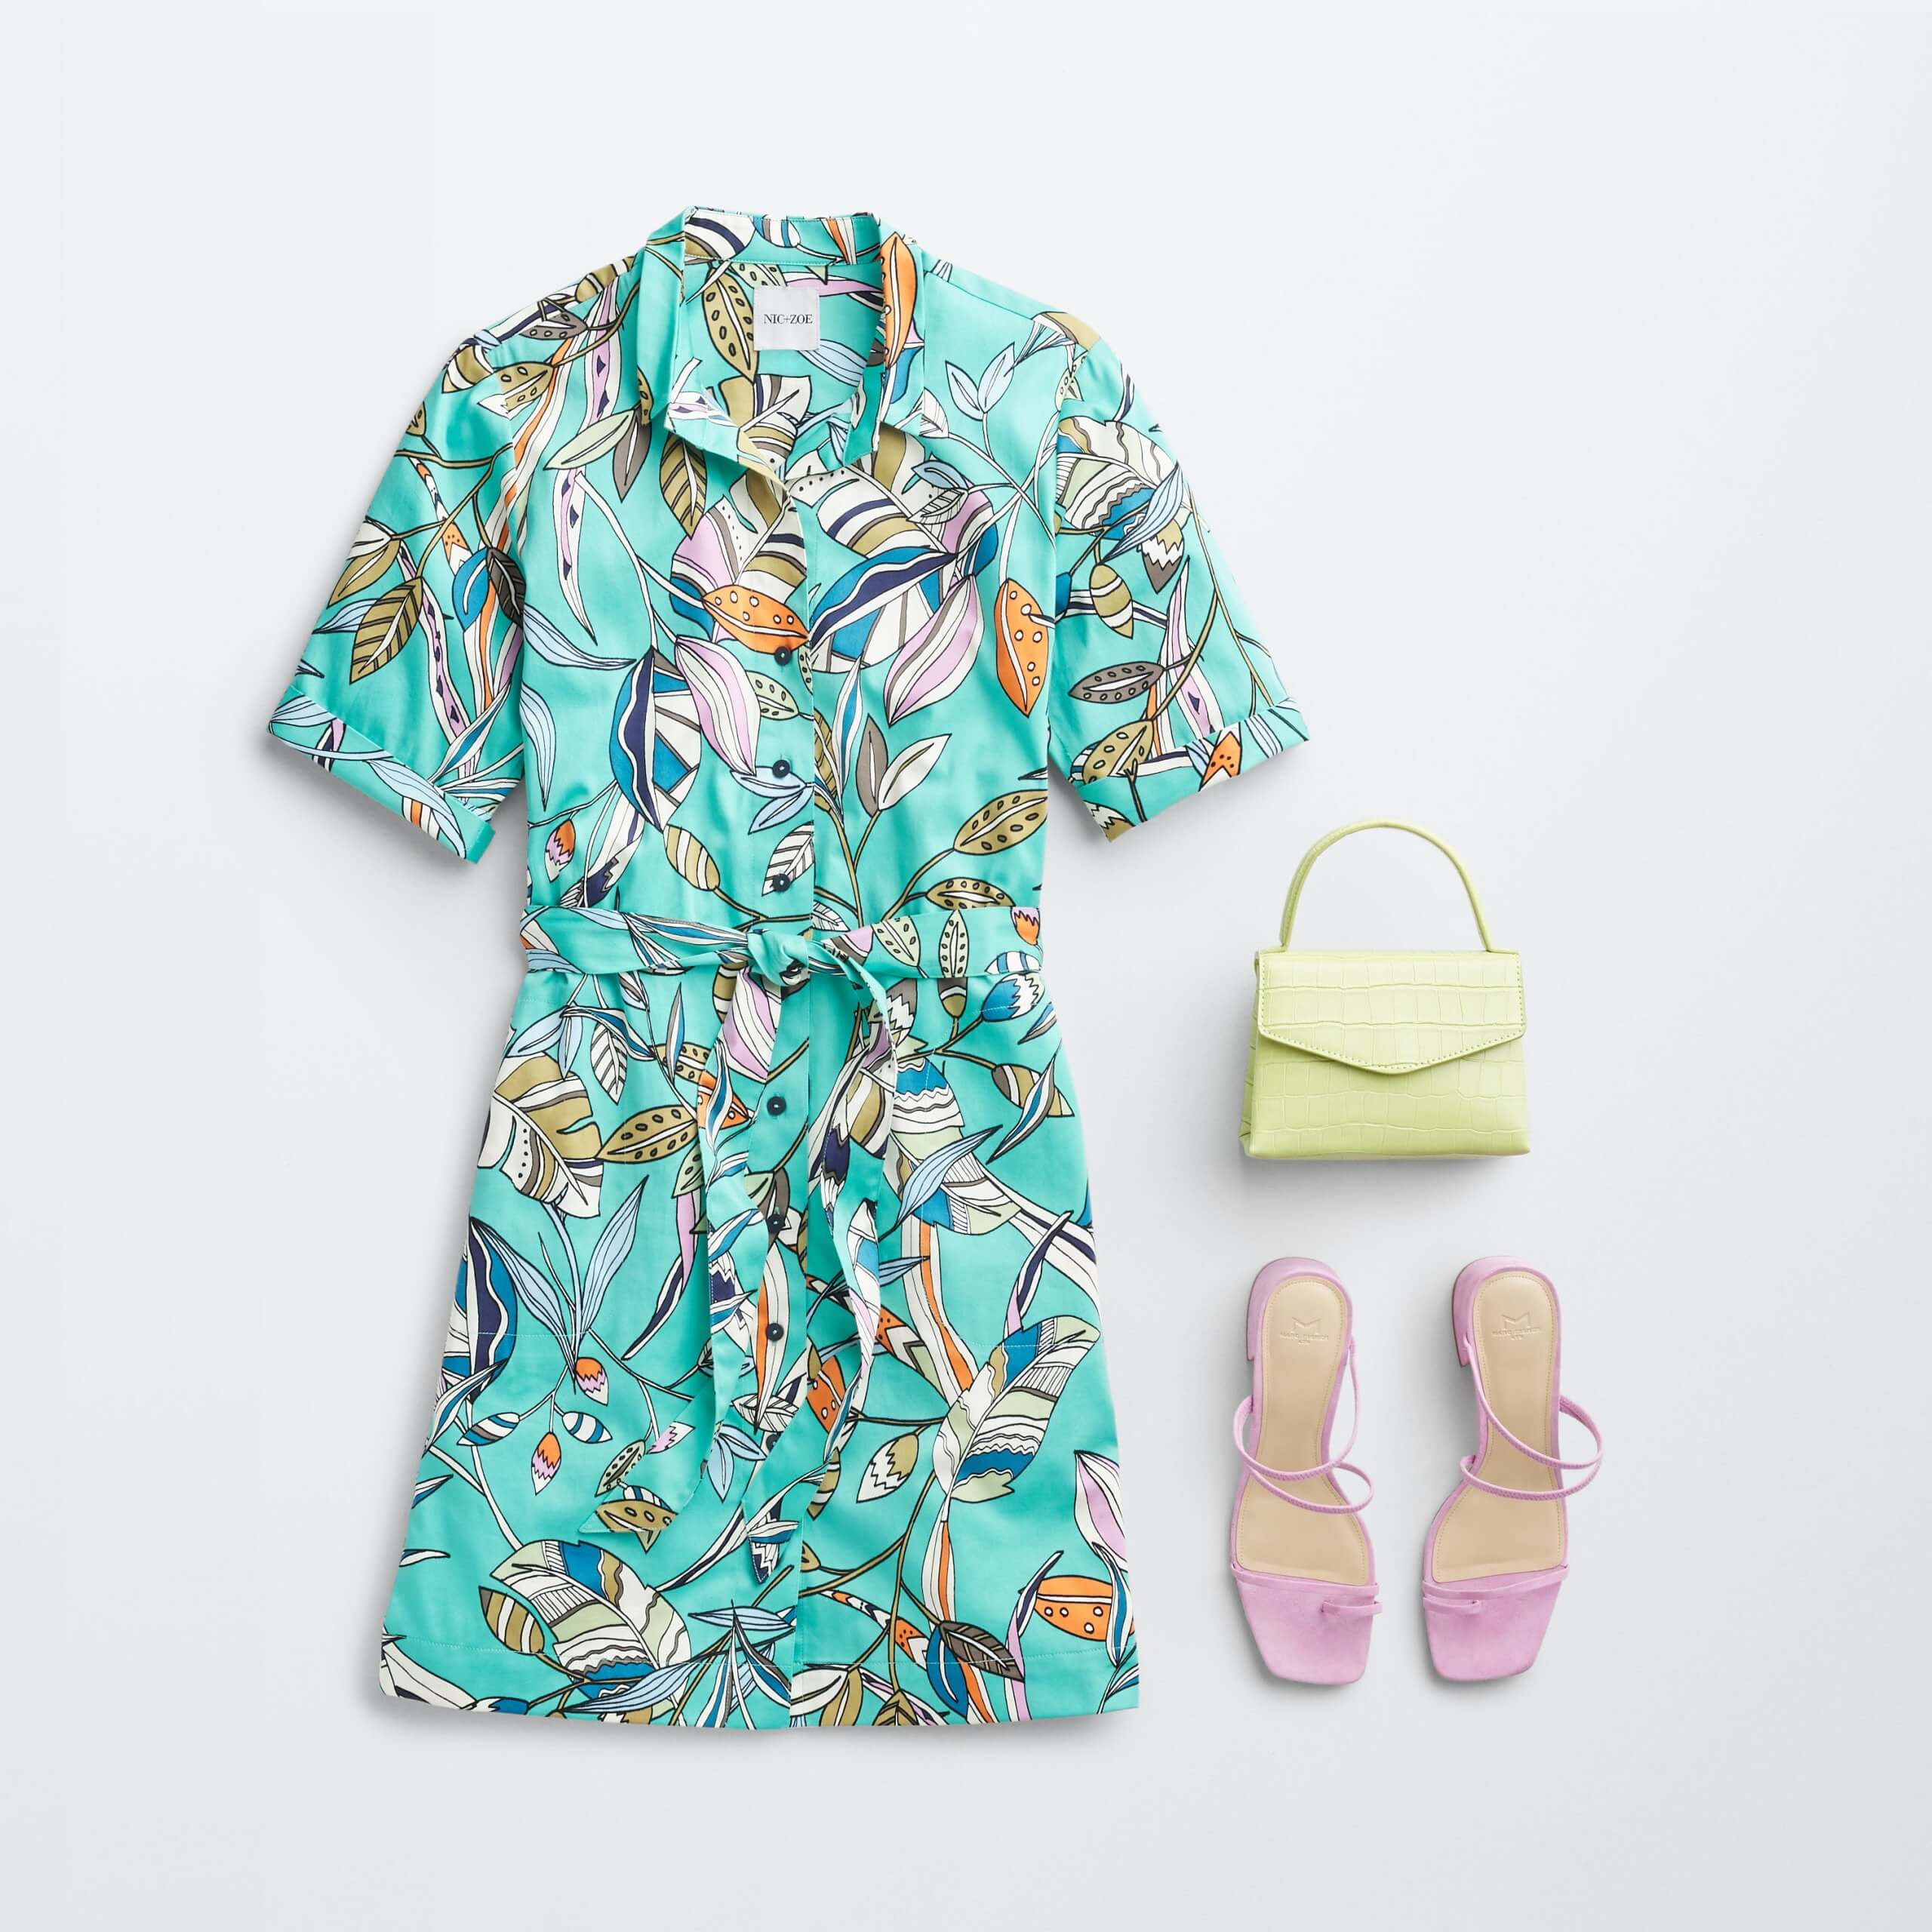 Stitch Fix Women's outfit laydown featuring a teal tropical print dress next to lime-green crossbody bag and pink heeled sandals.